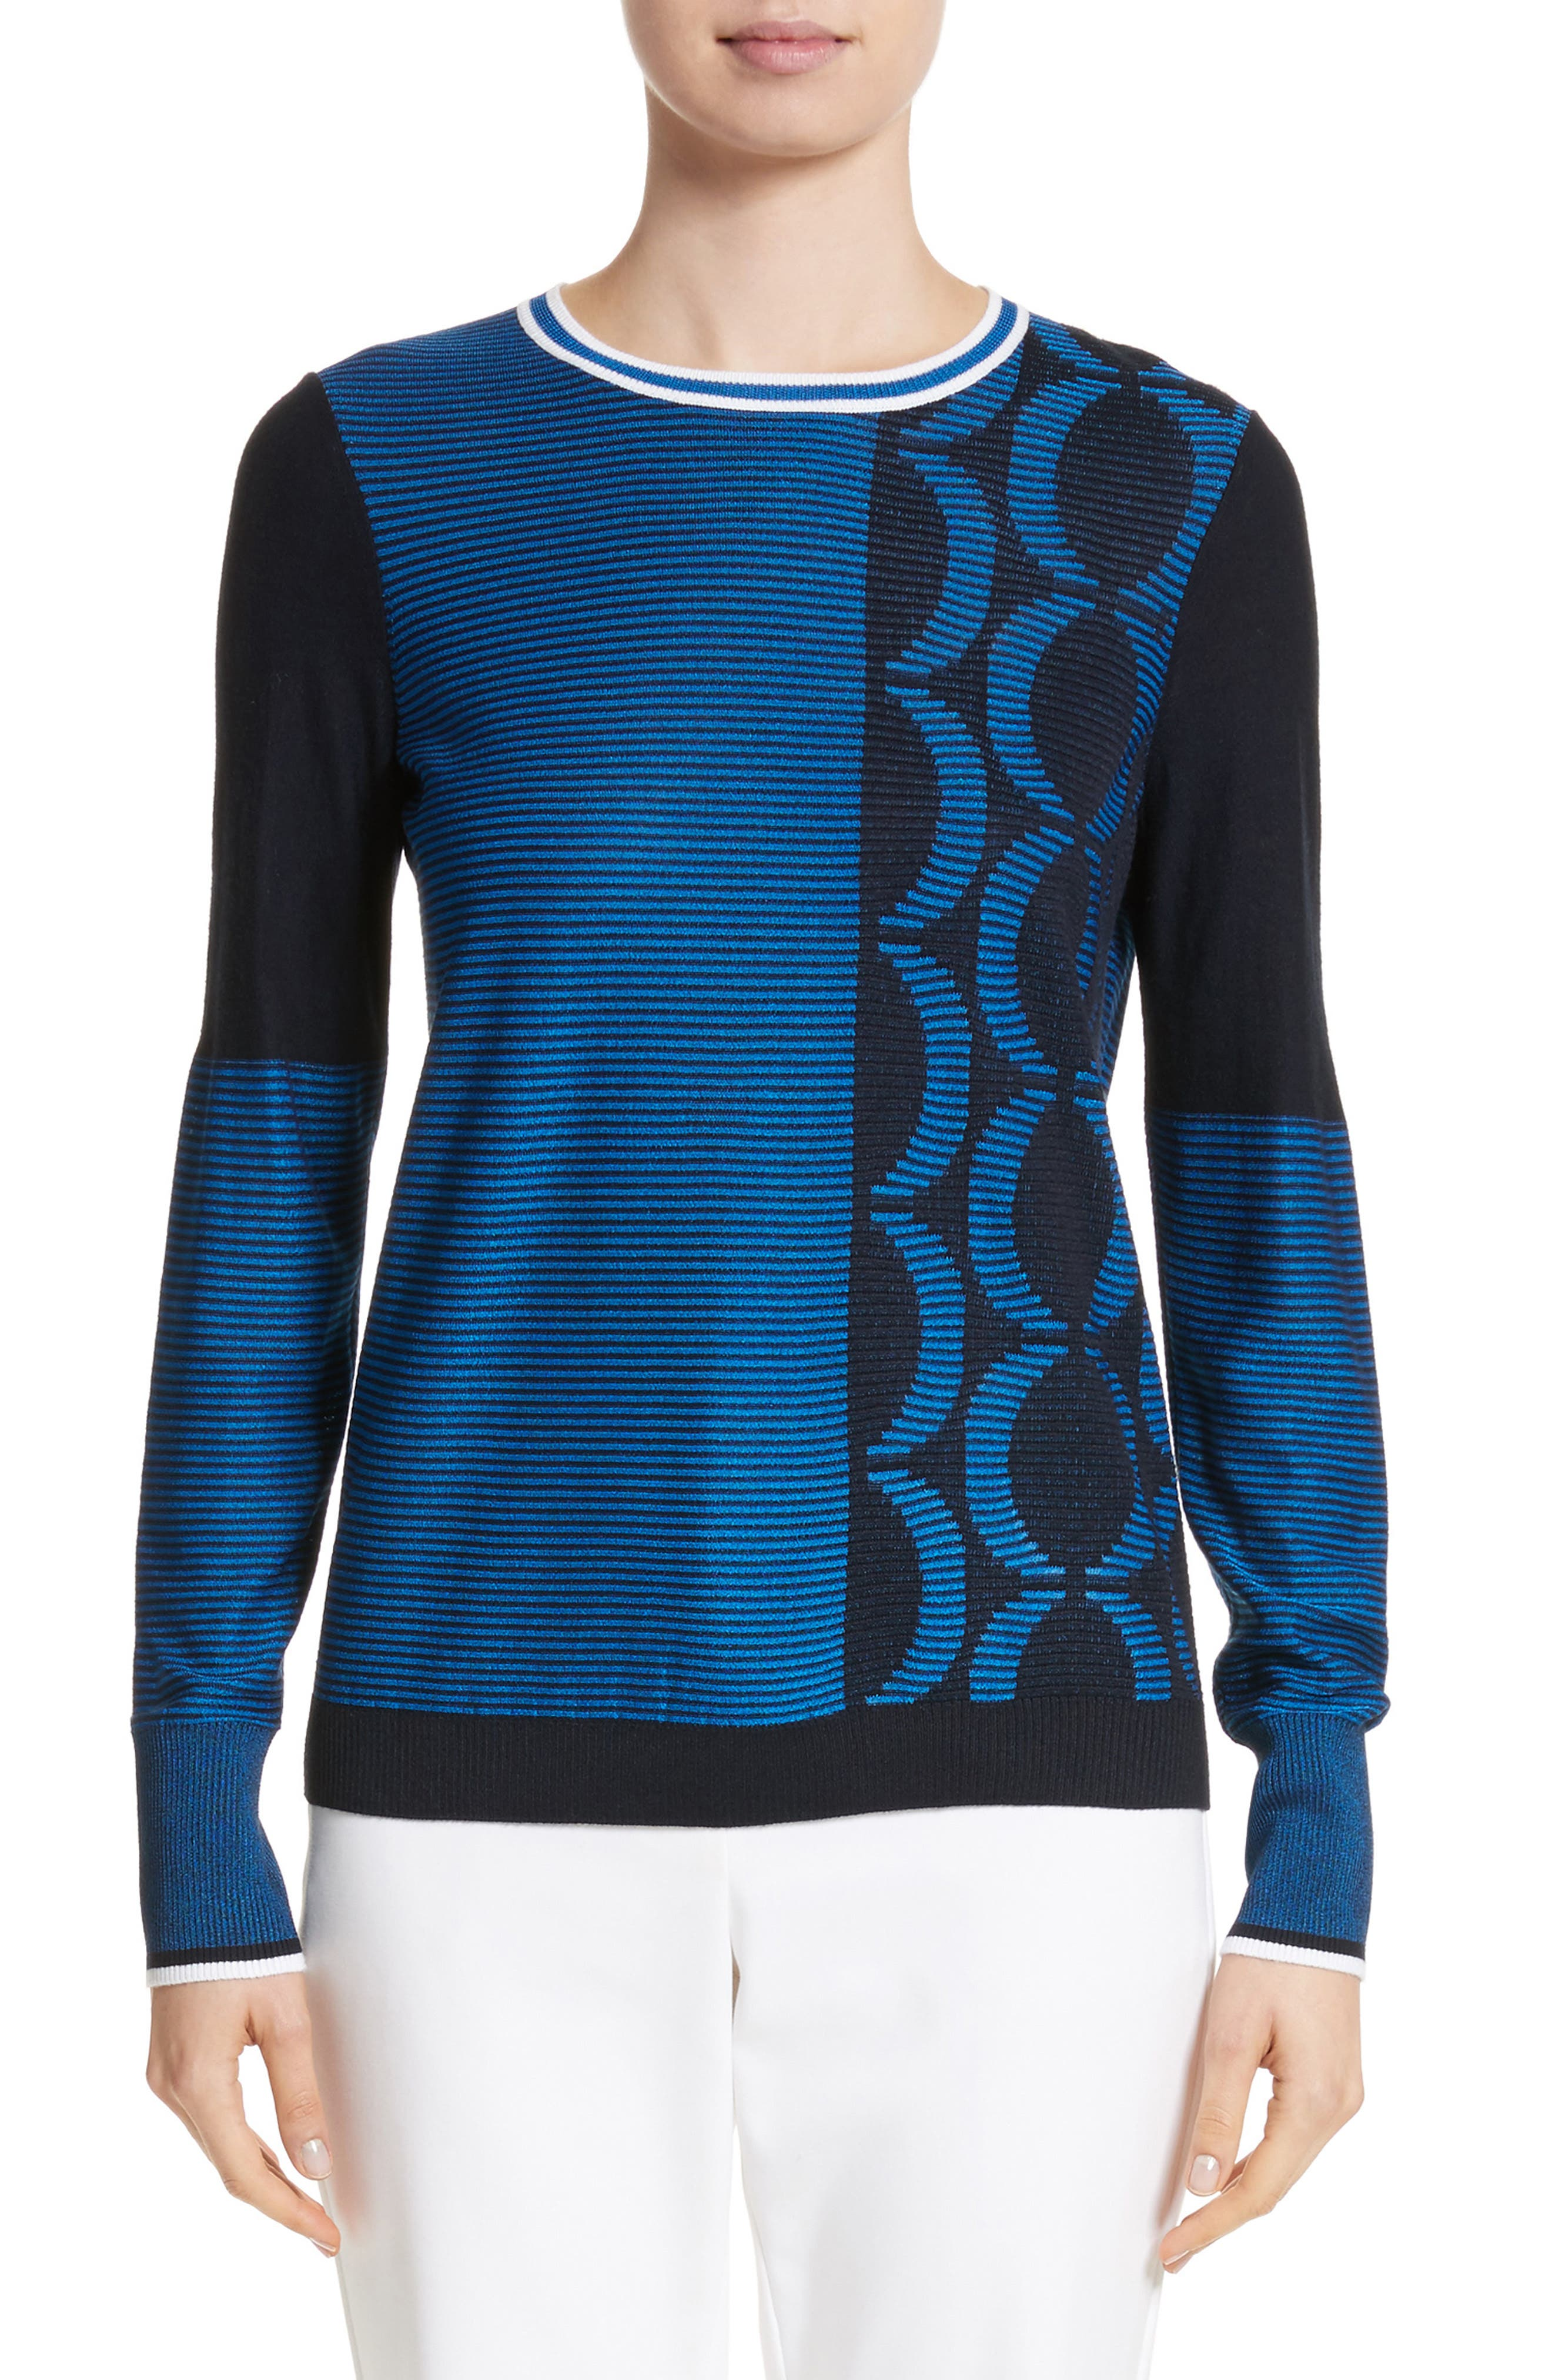 Alternate Image 1 Selected - St. John Collection Jacquard Knit Sweater